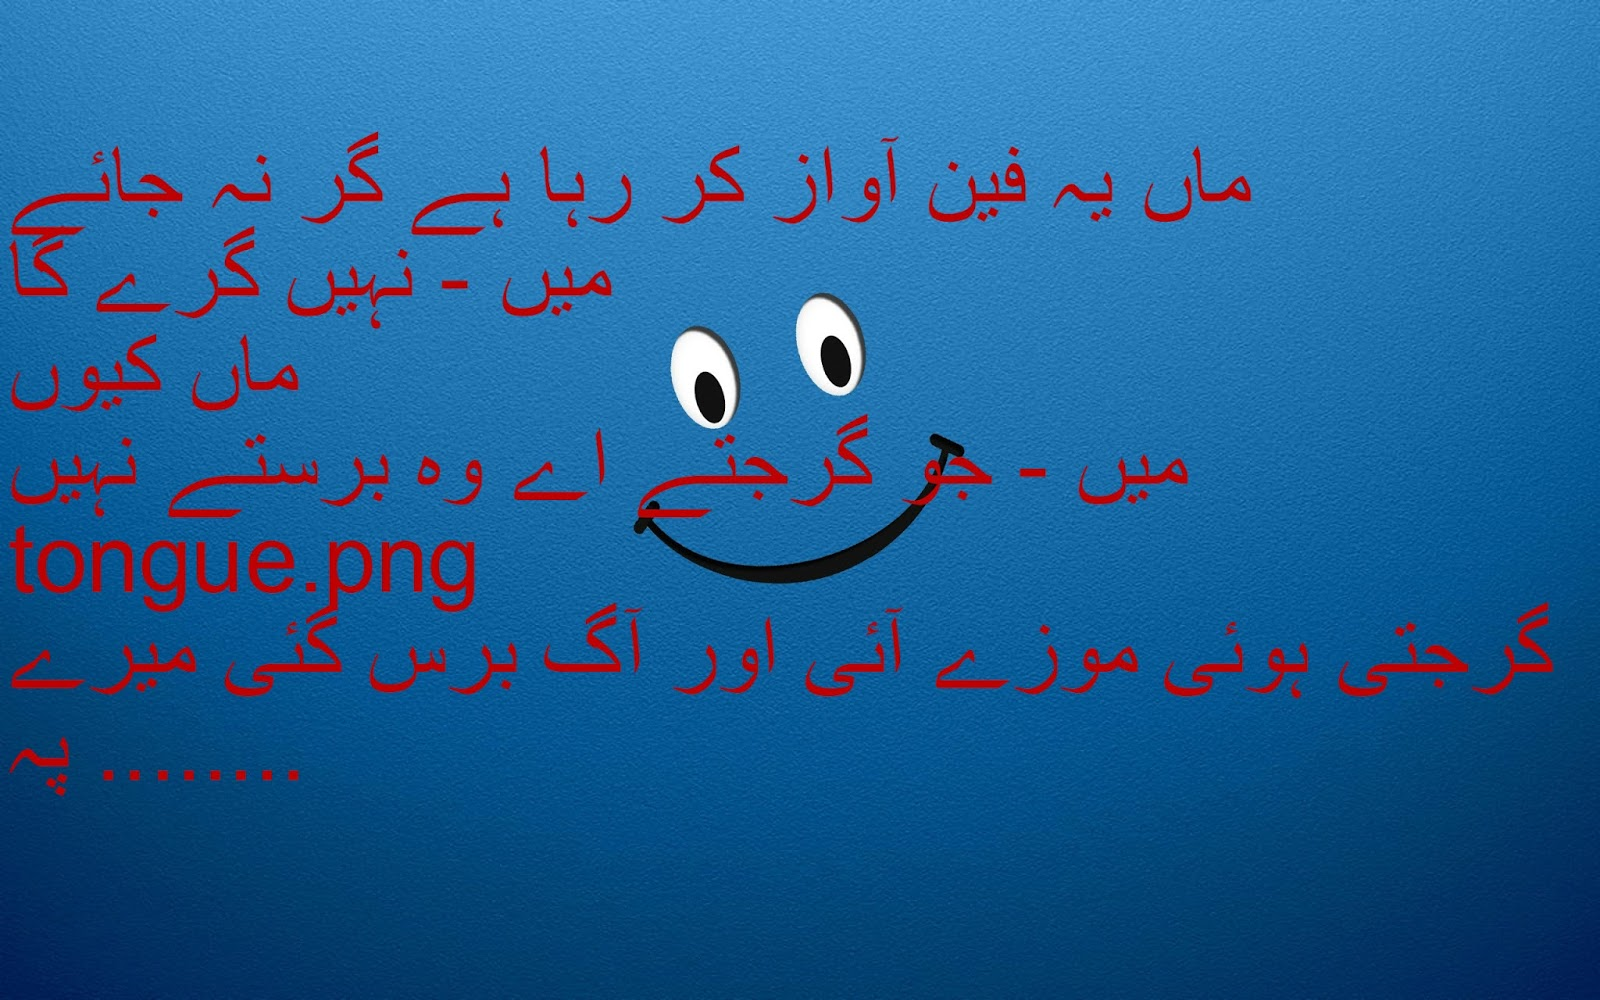 Funny Sms In Urduimage Rdu Jokes Imagefunny Urdu Jokes Facebookfunny Urdu Jokes In Englishfunny Urdu Jokes For Adultsfunny Urdu Jokes Smslatest